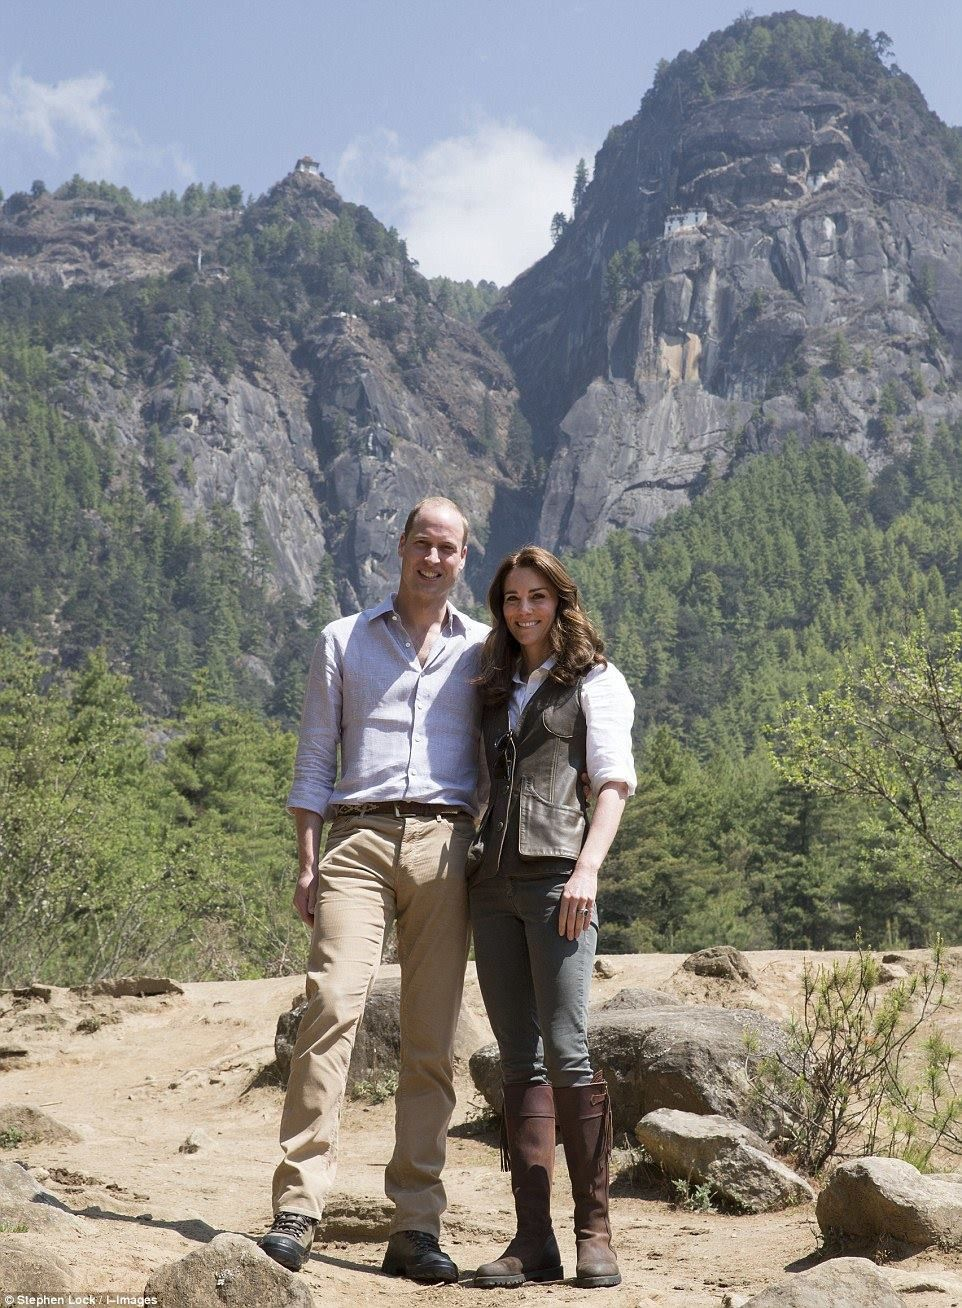 The Duke and Duchess of Cambridge. William and Kate in Bhutan April 2016